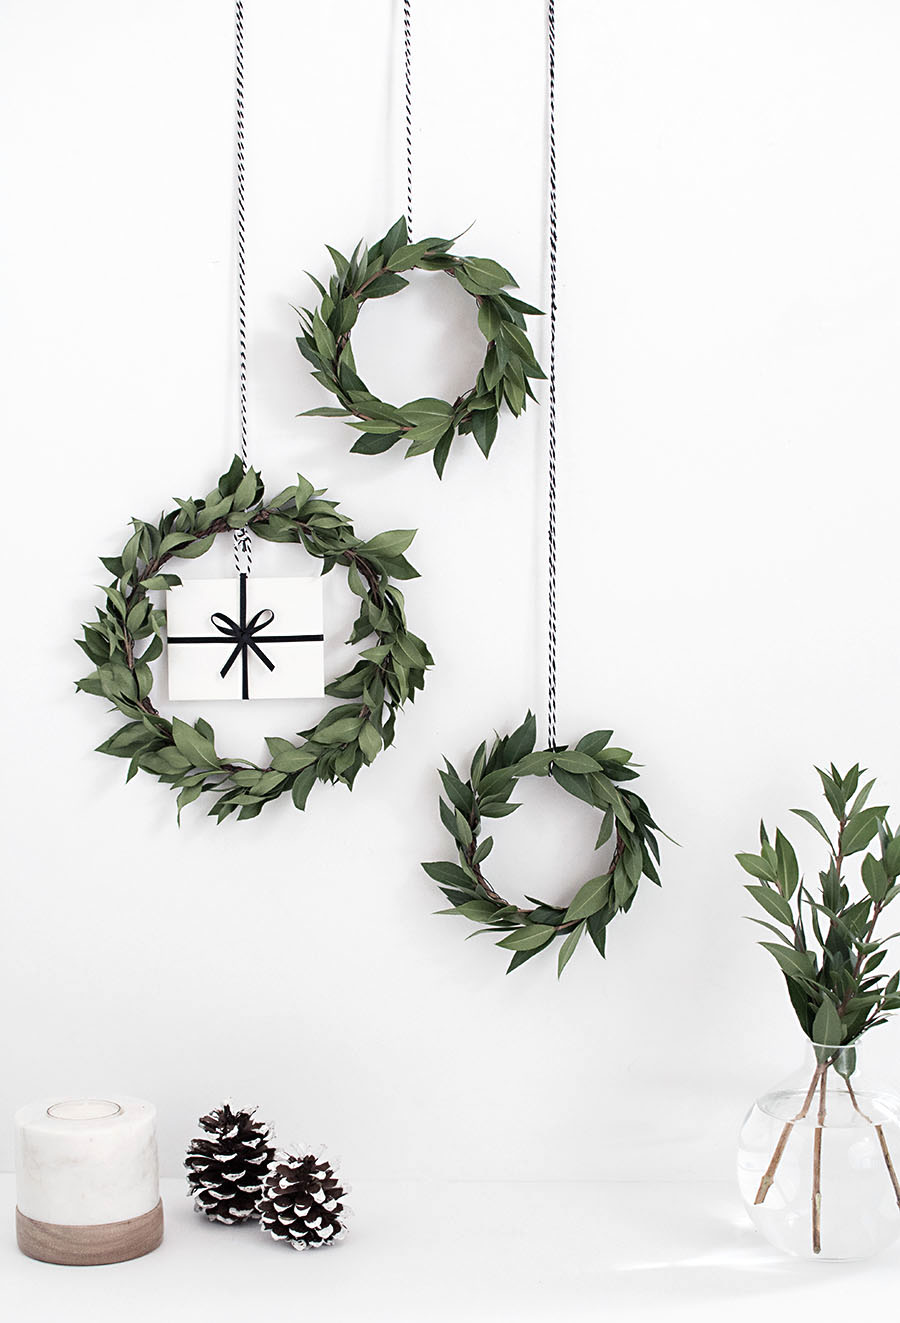 Hanging mini wreath